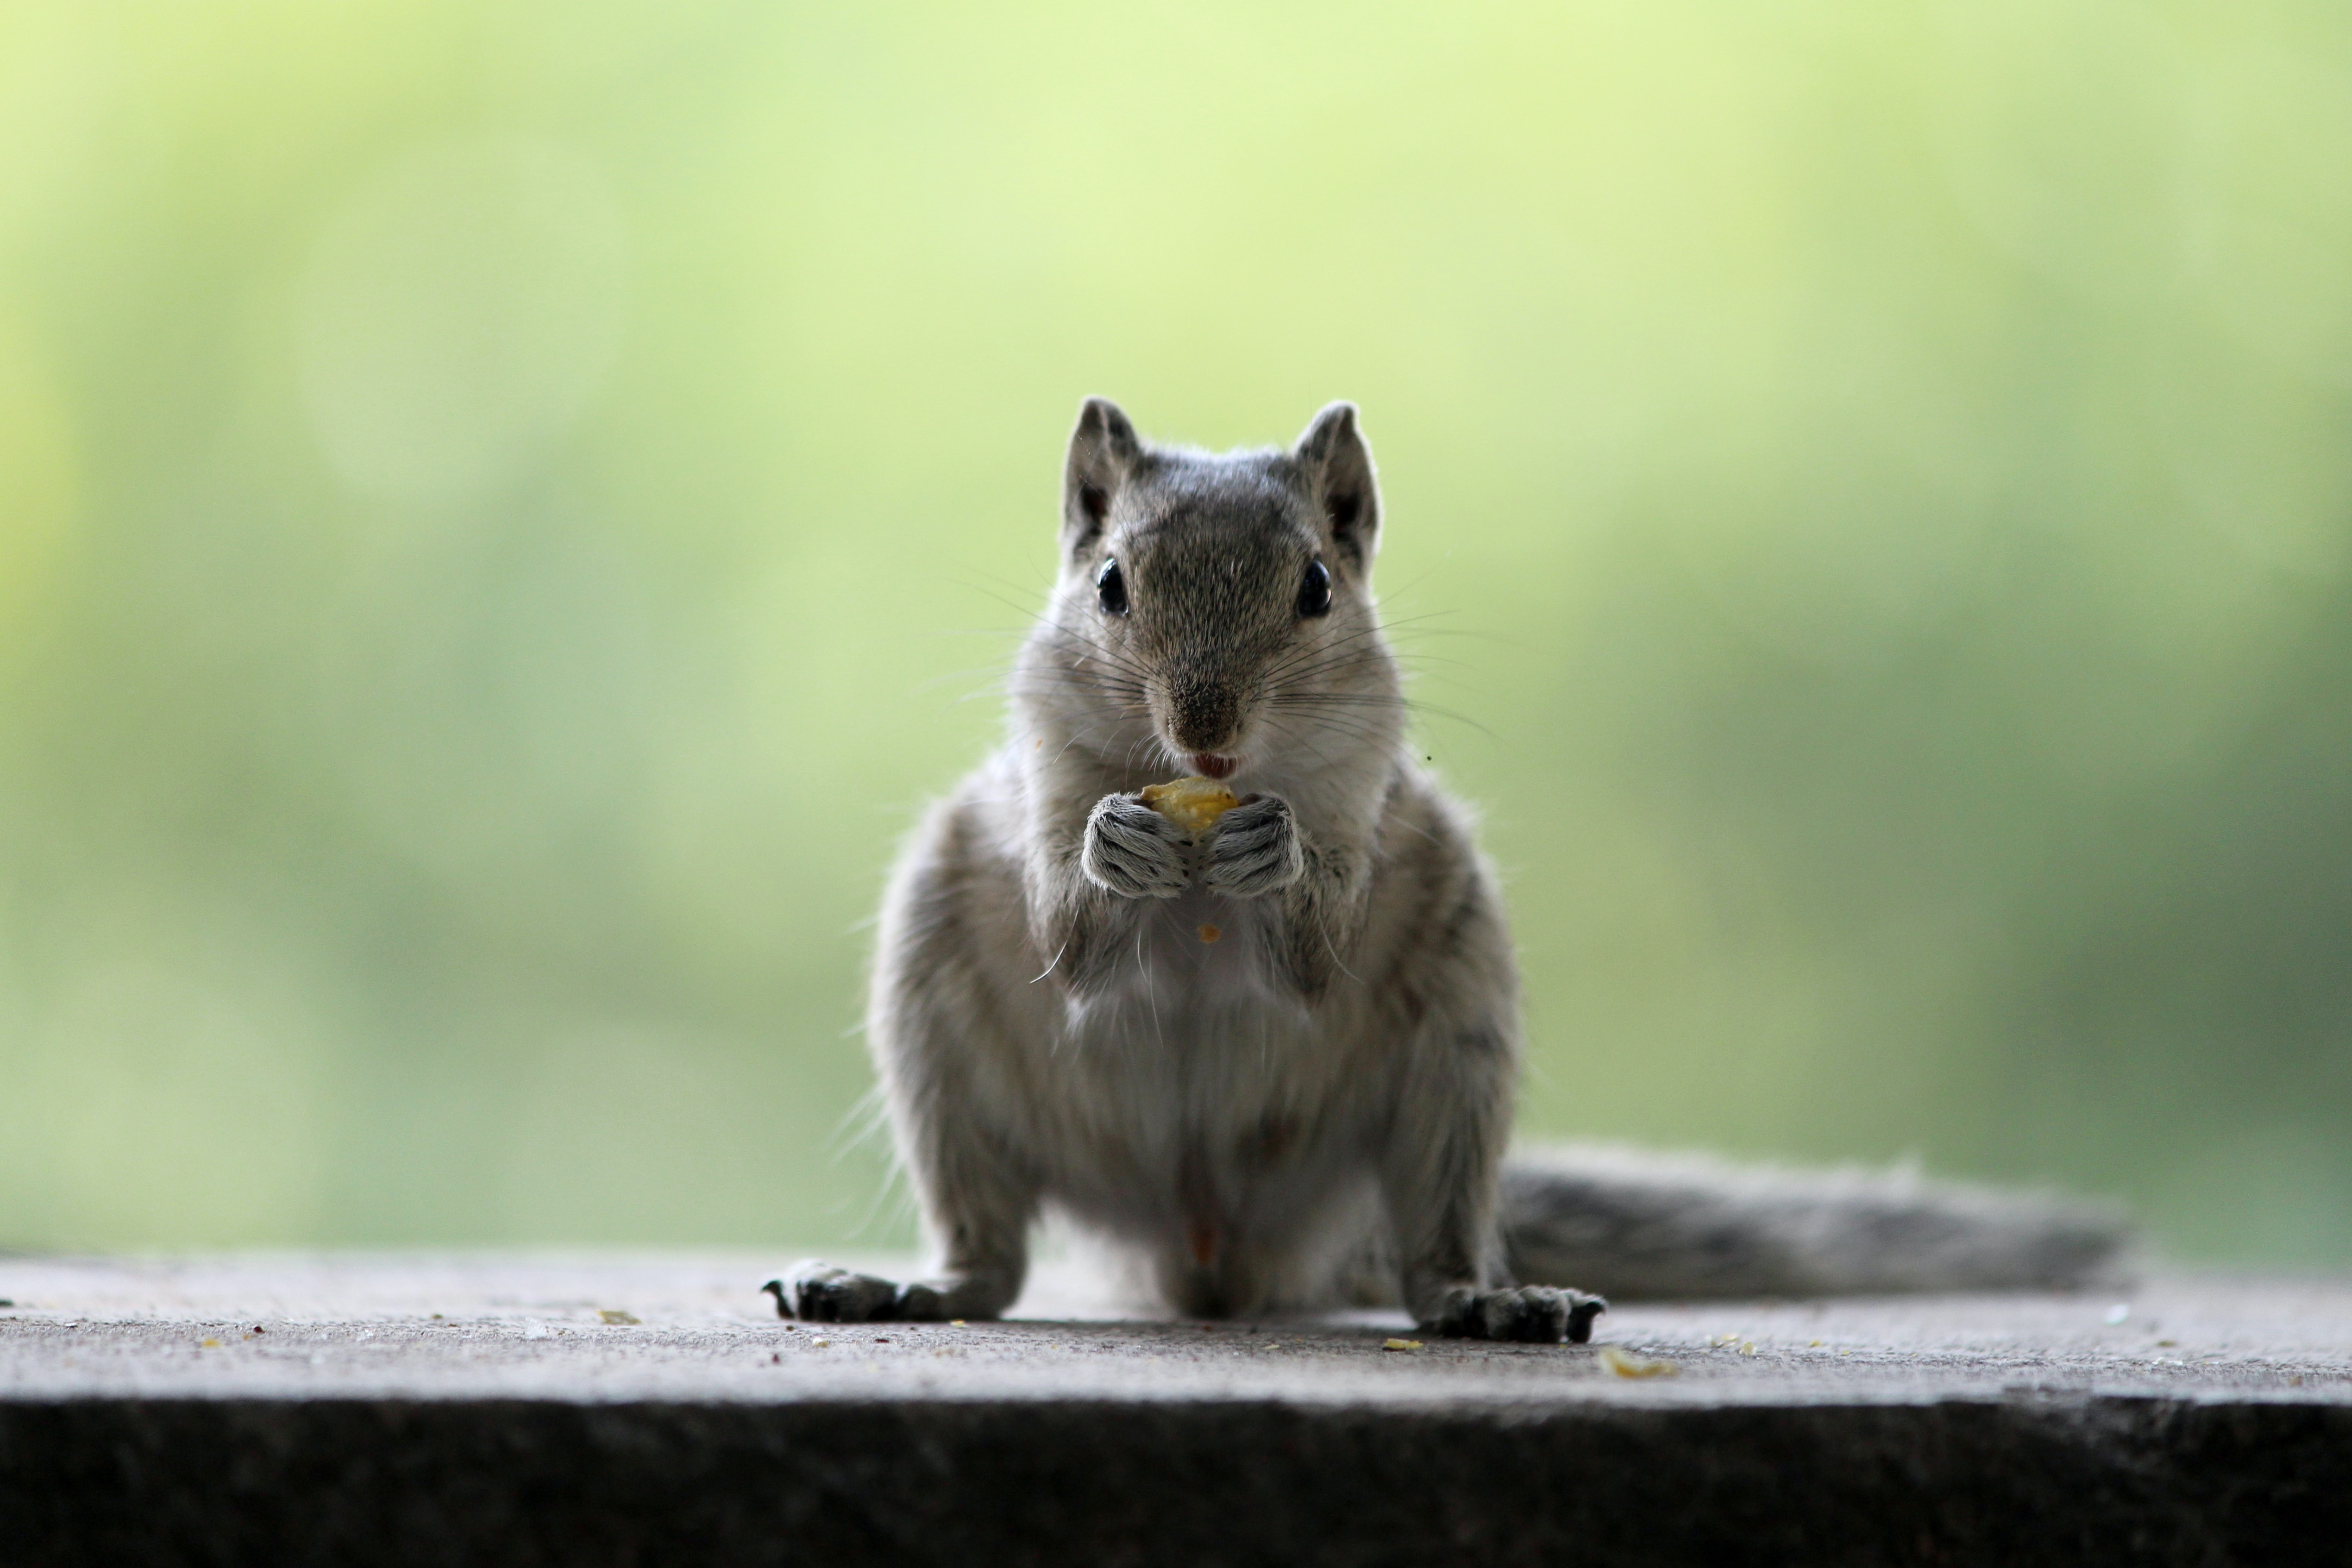 squirrel eating knut